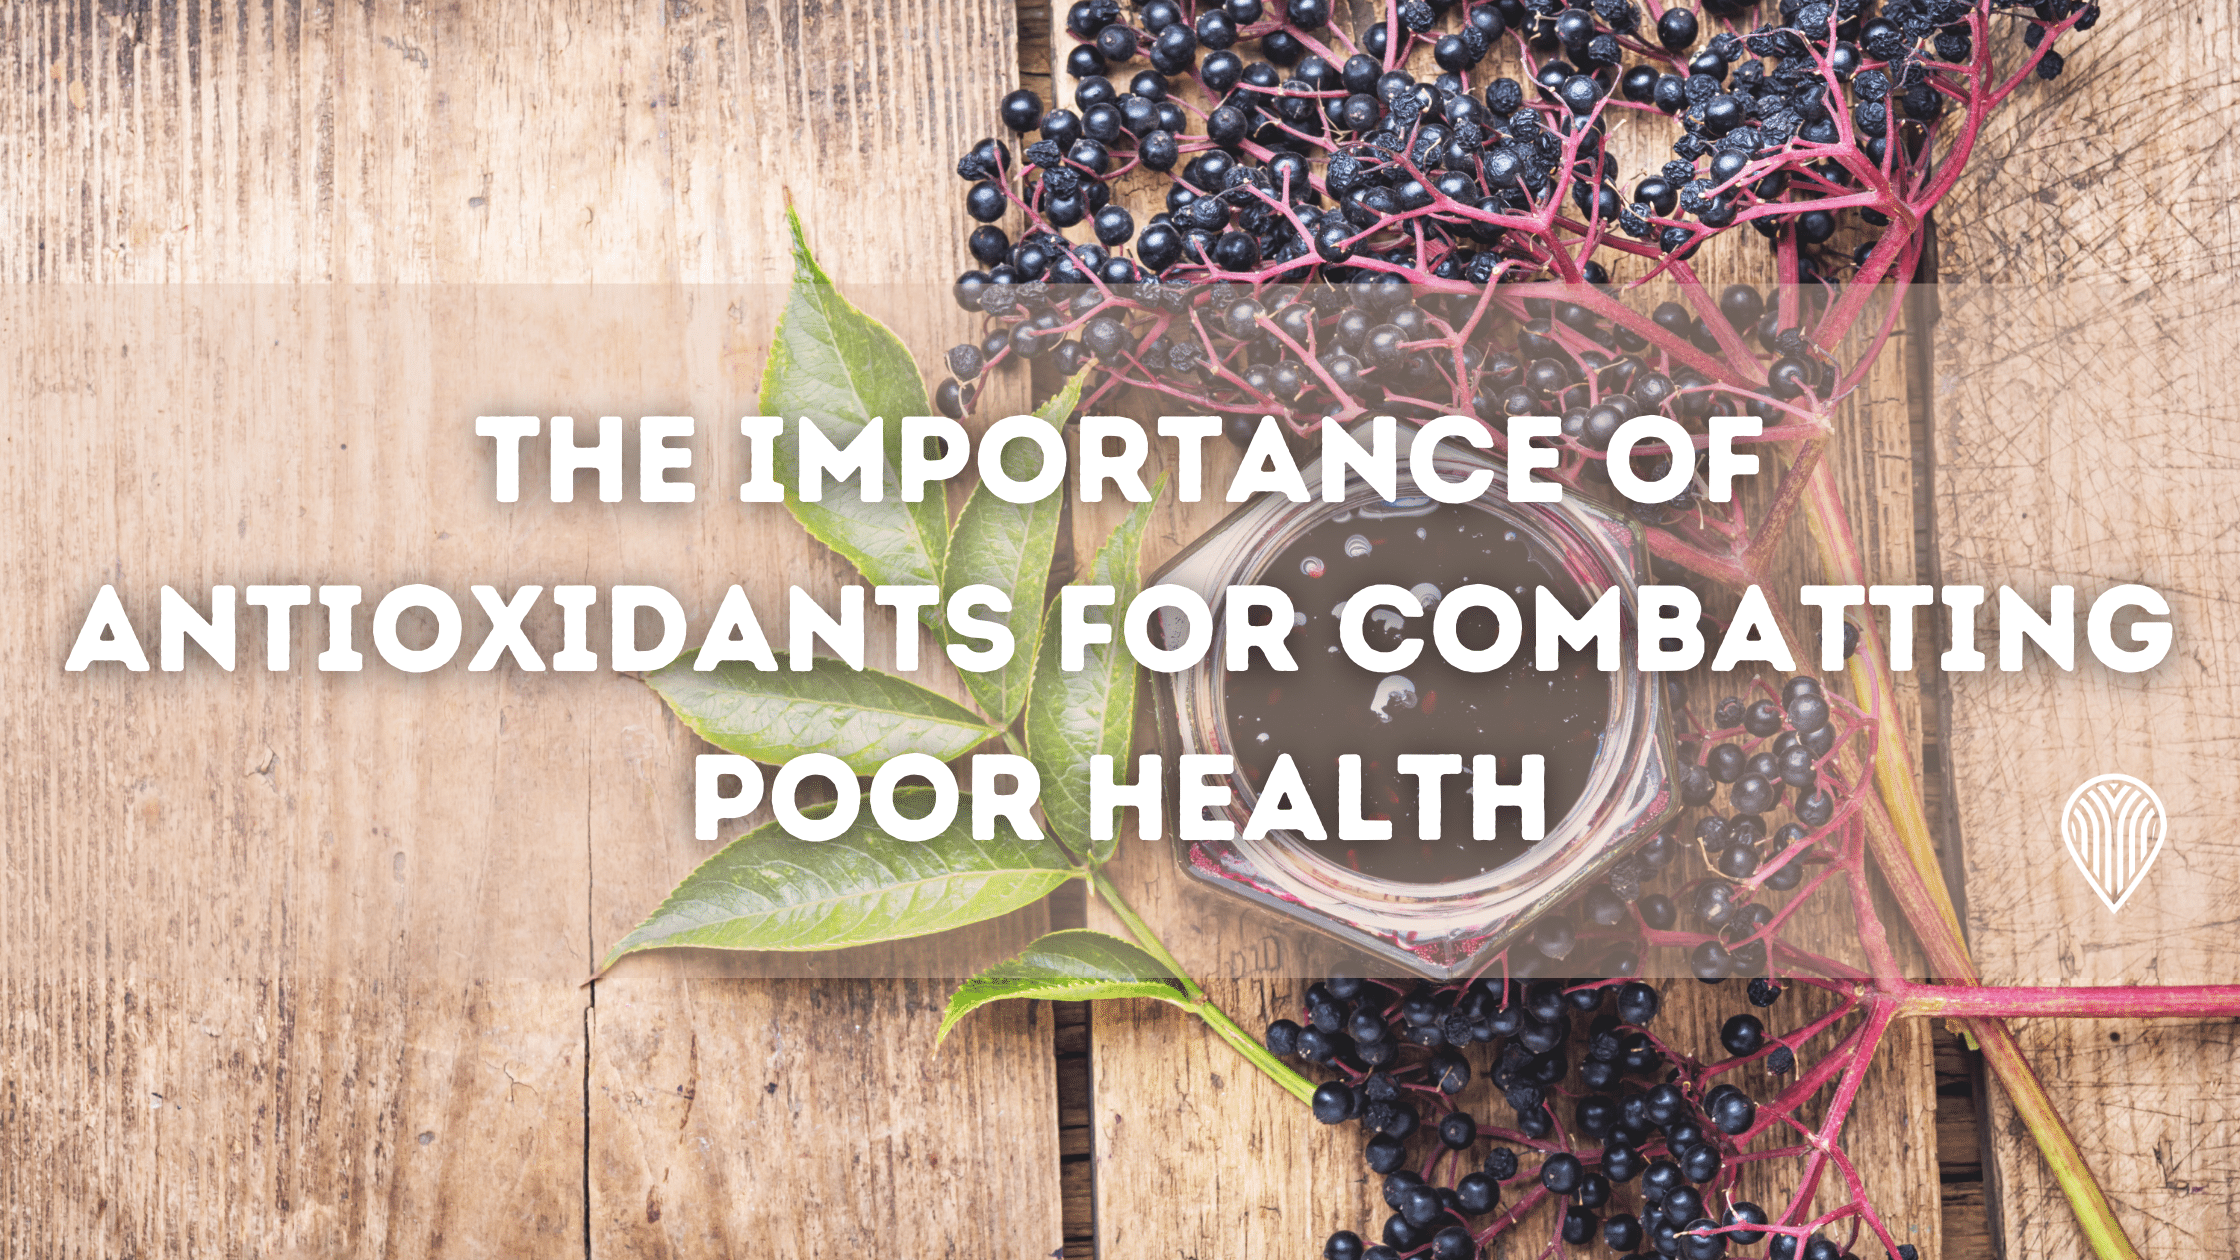 The importance of antioxidants for combatting poor health